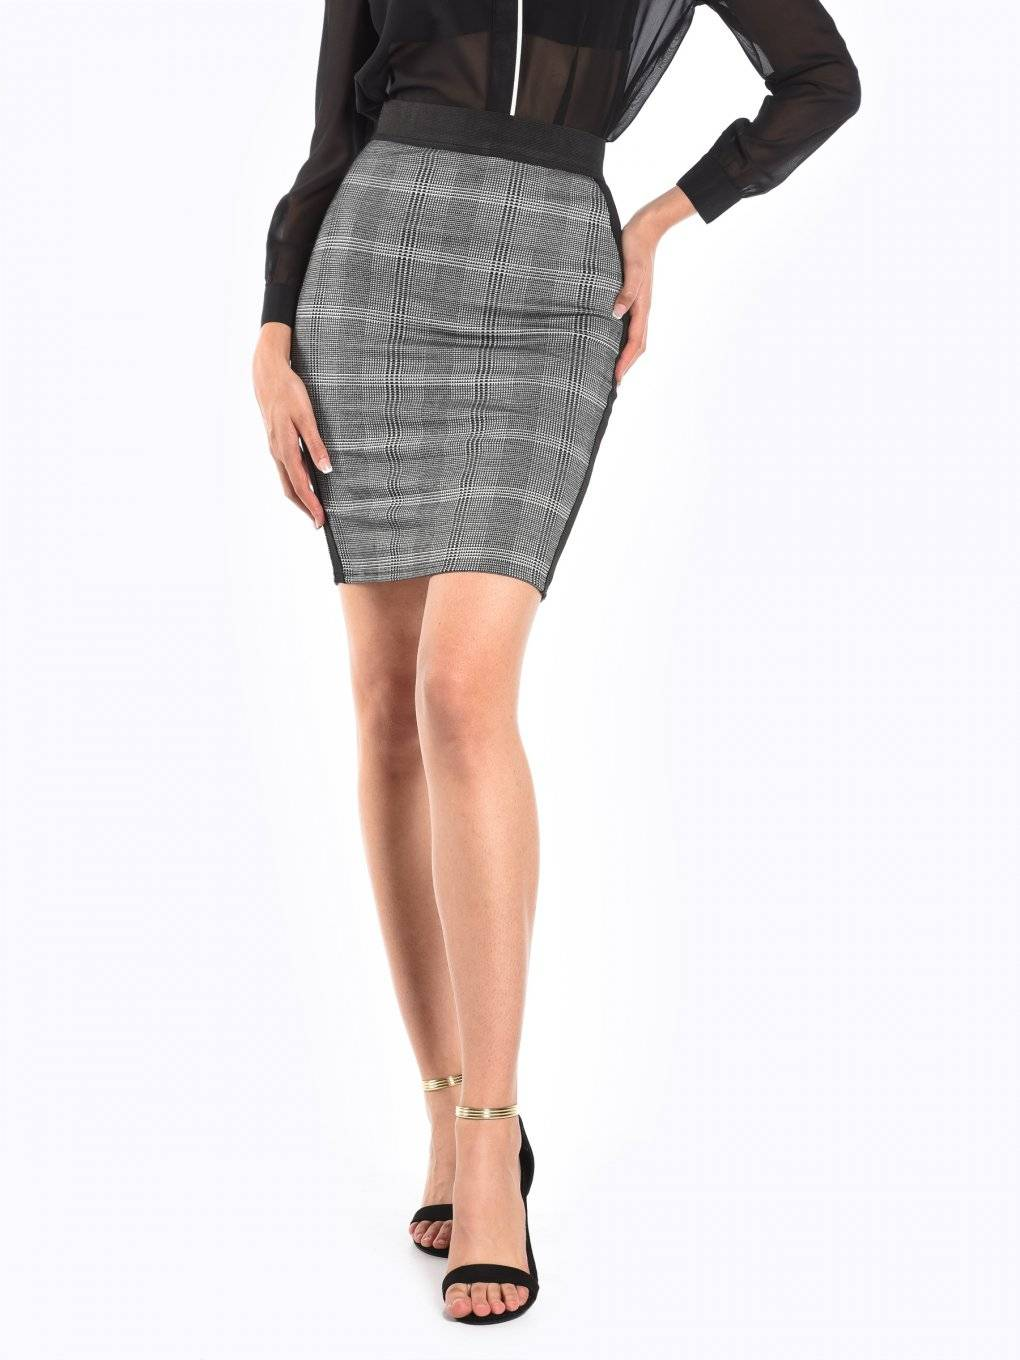 Plaid bodycon skirt